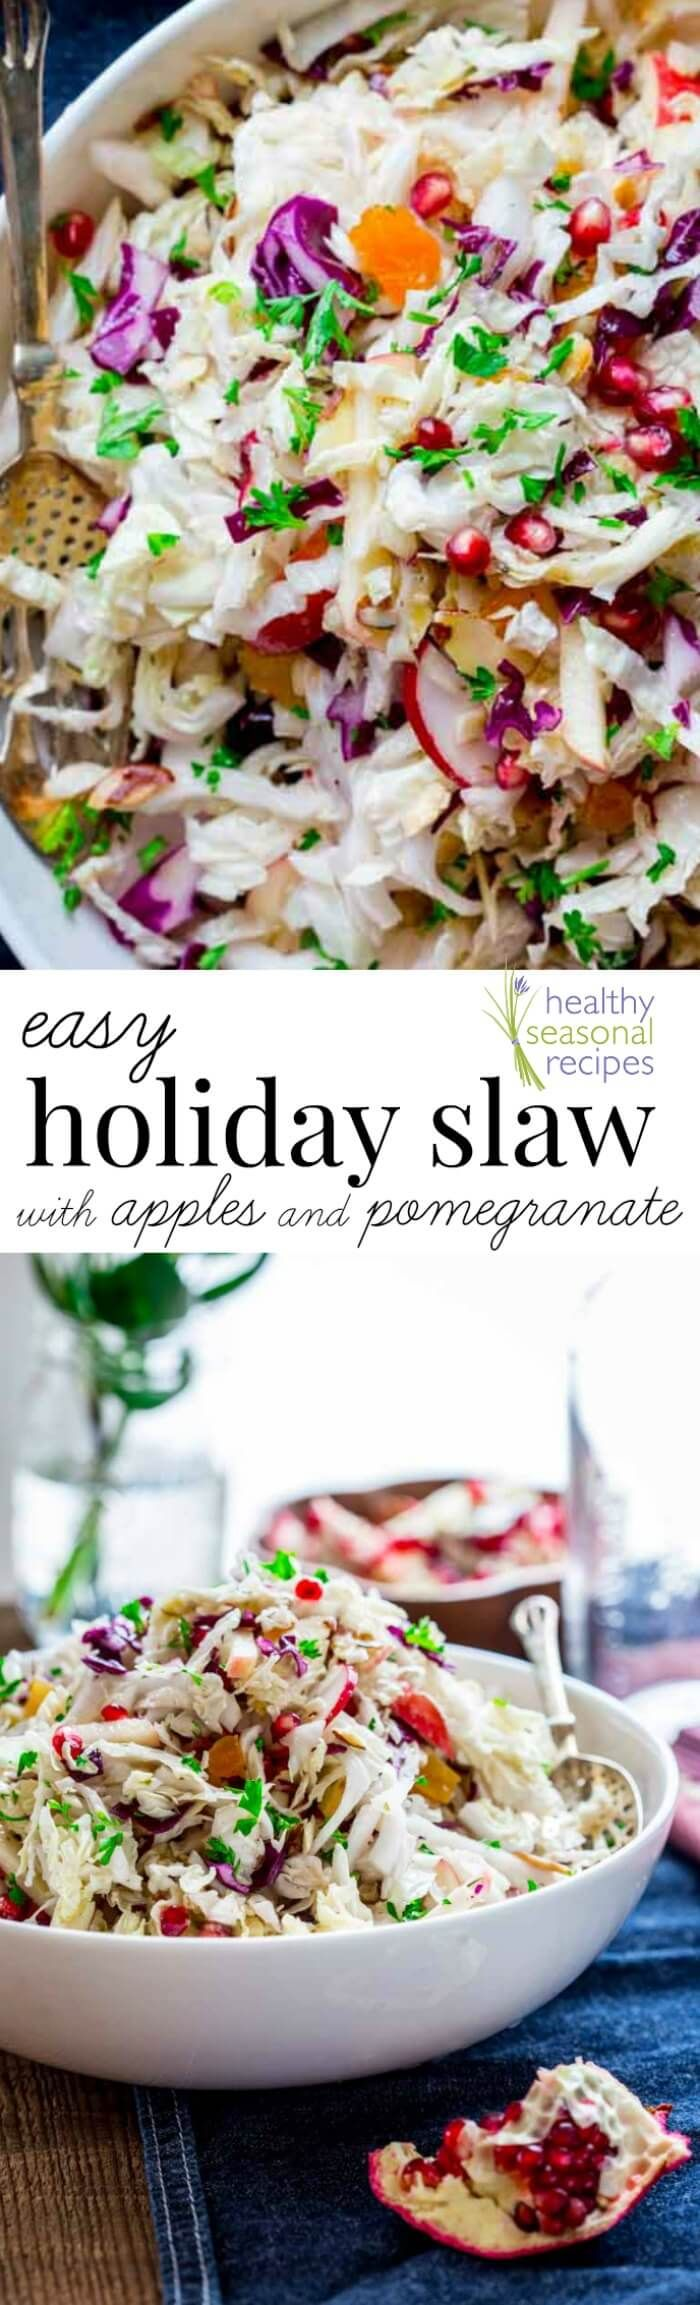 This easy holiday slaw with apples and pomegranate is a bright and cheerful dish that will provide a healthy and fresh contrast to the rest of your meal.